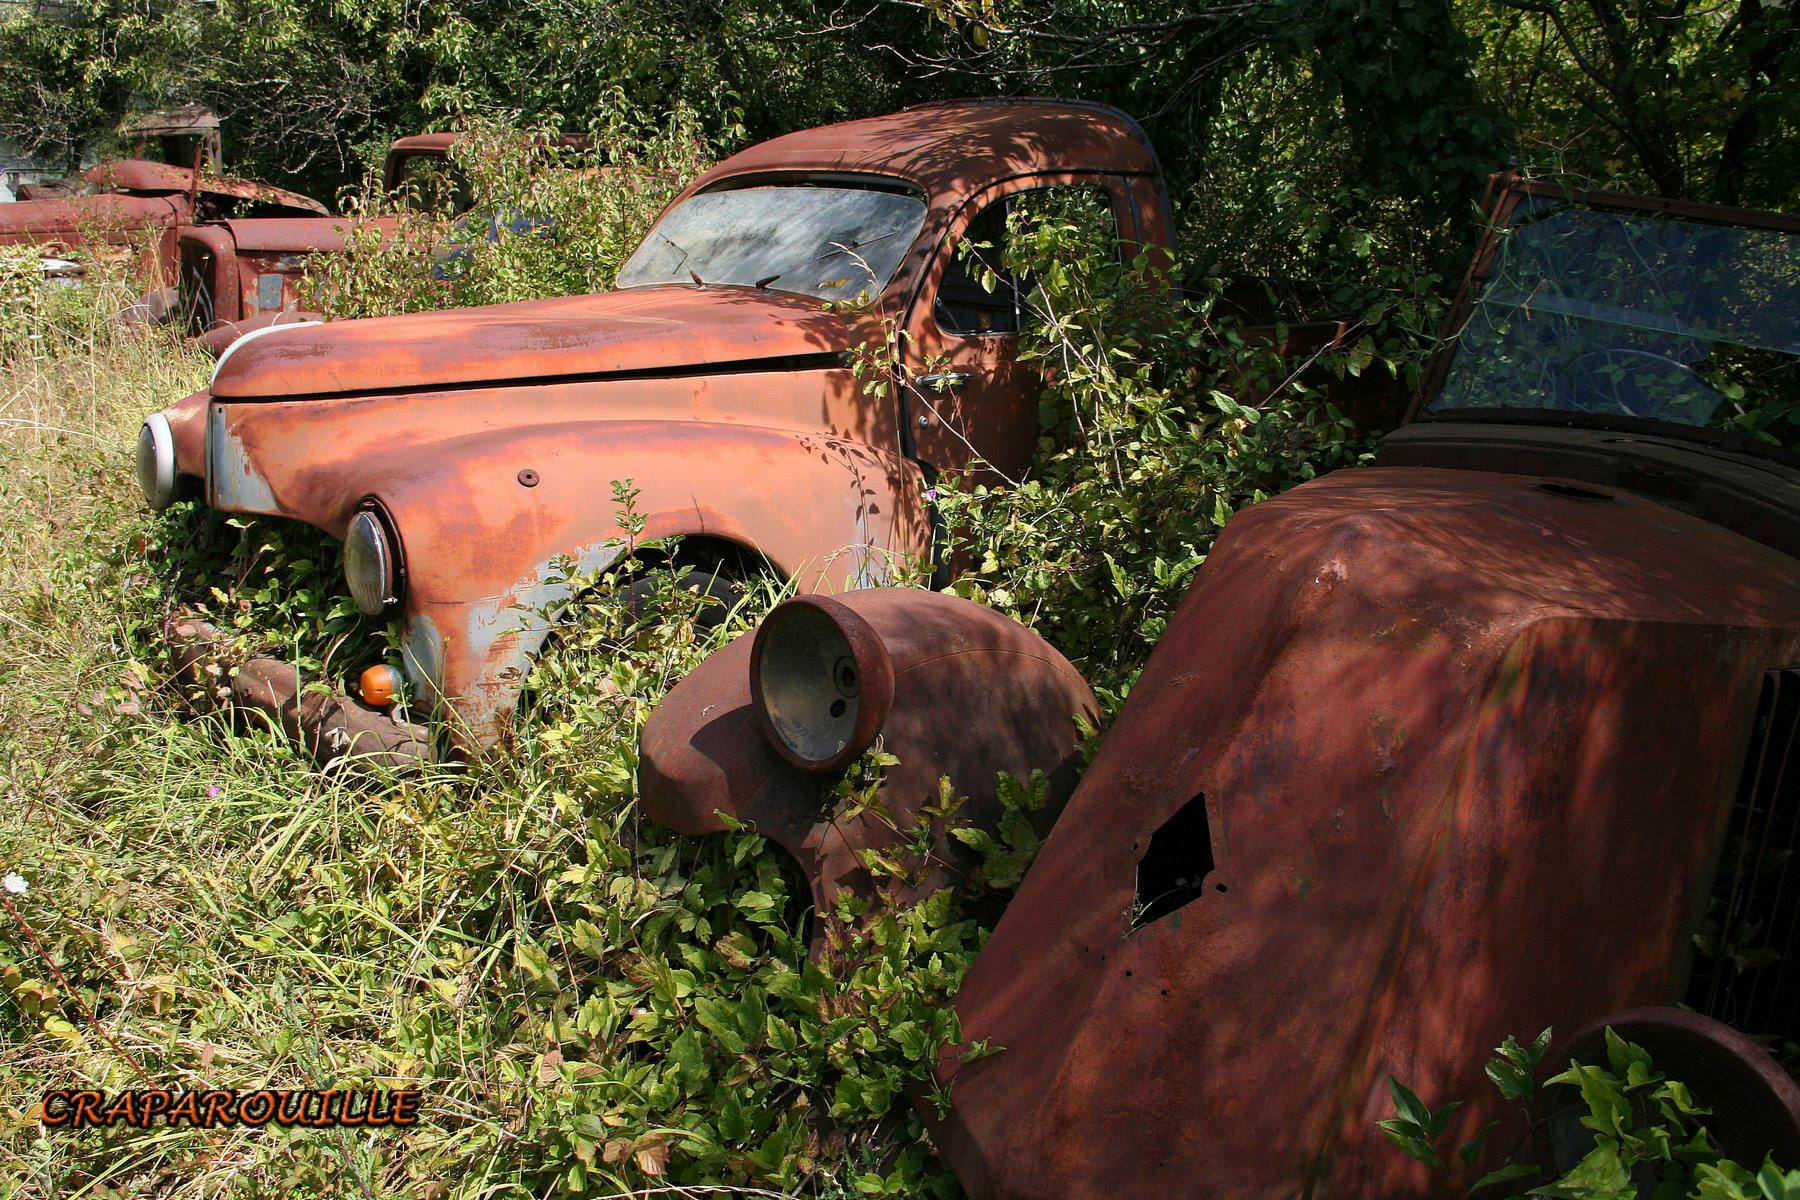 Photography-Diamonds-in-Rust-Craparouille-48